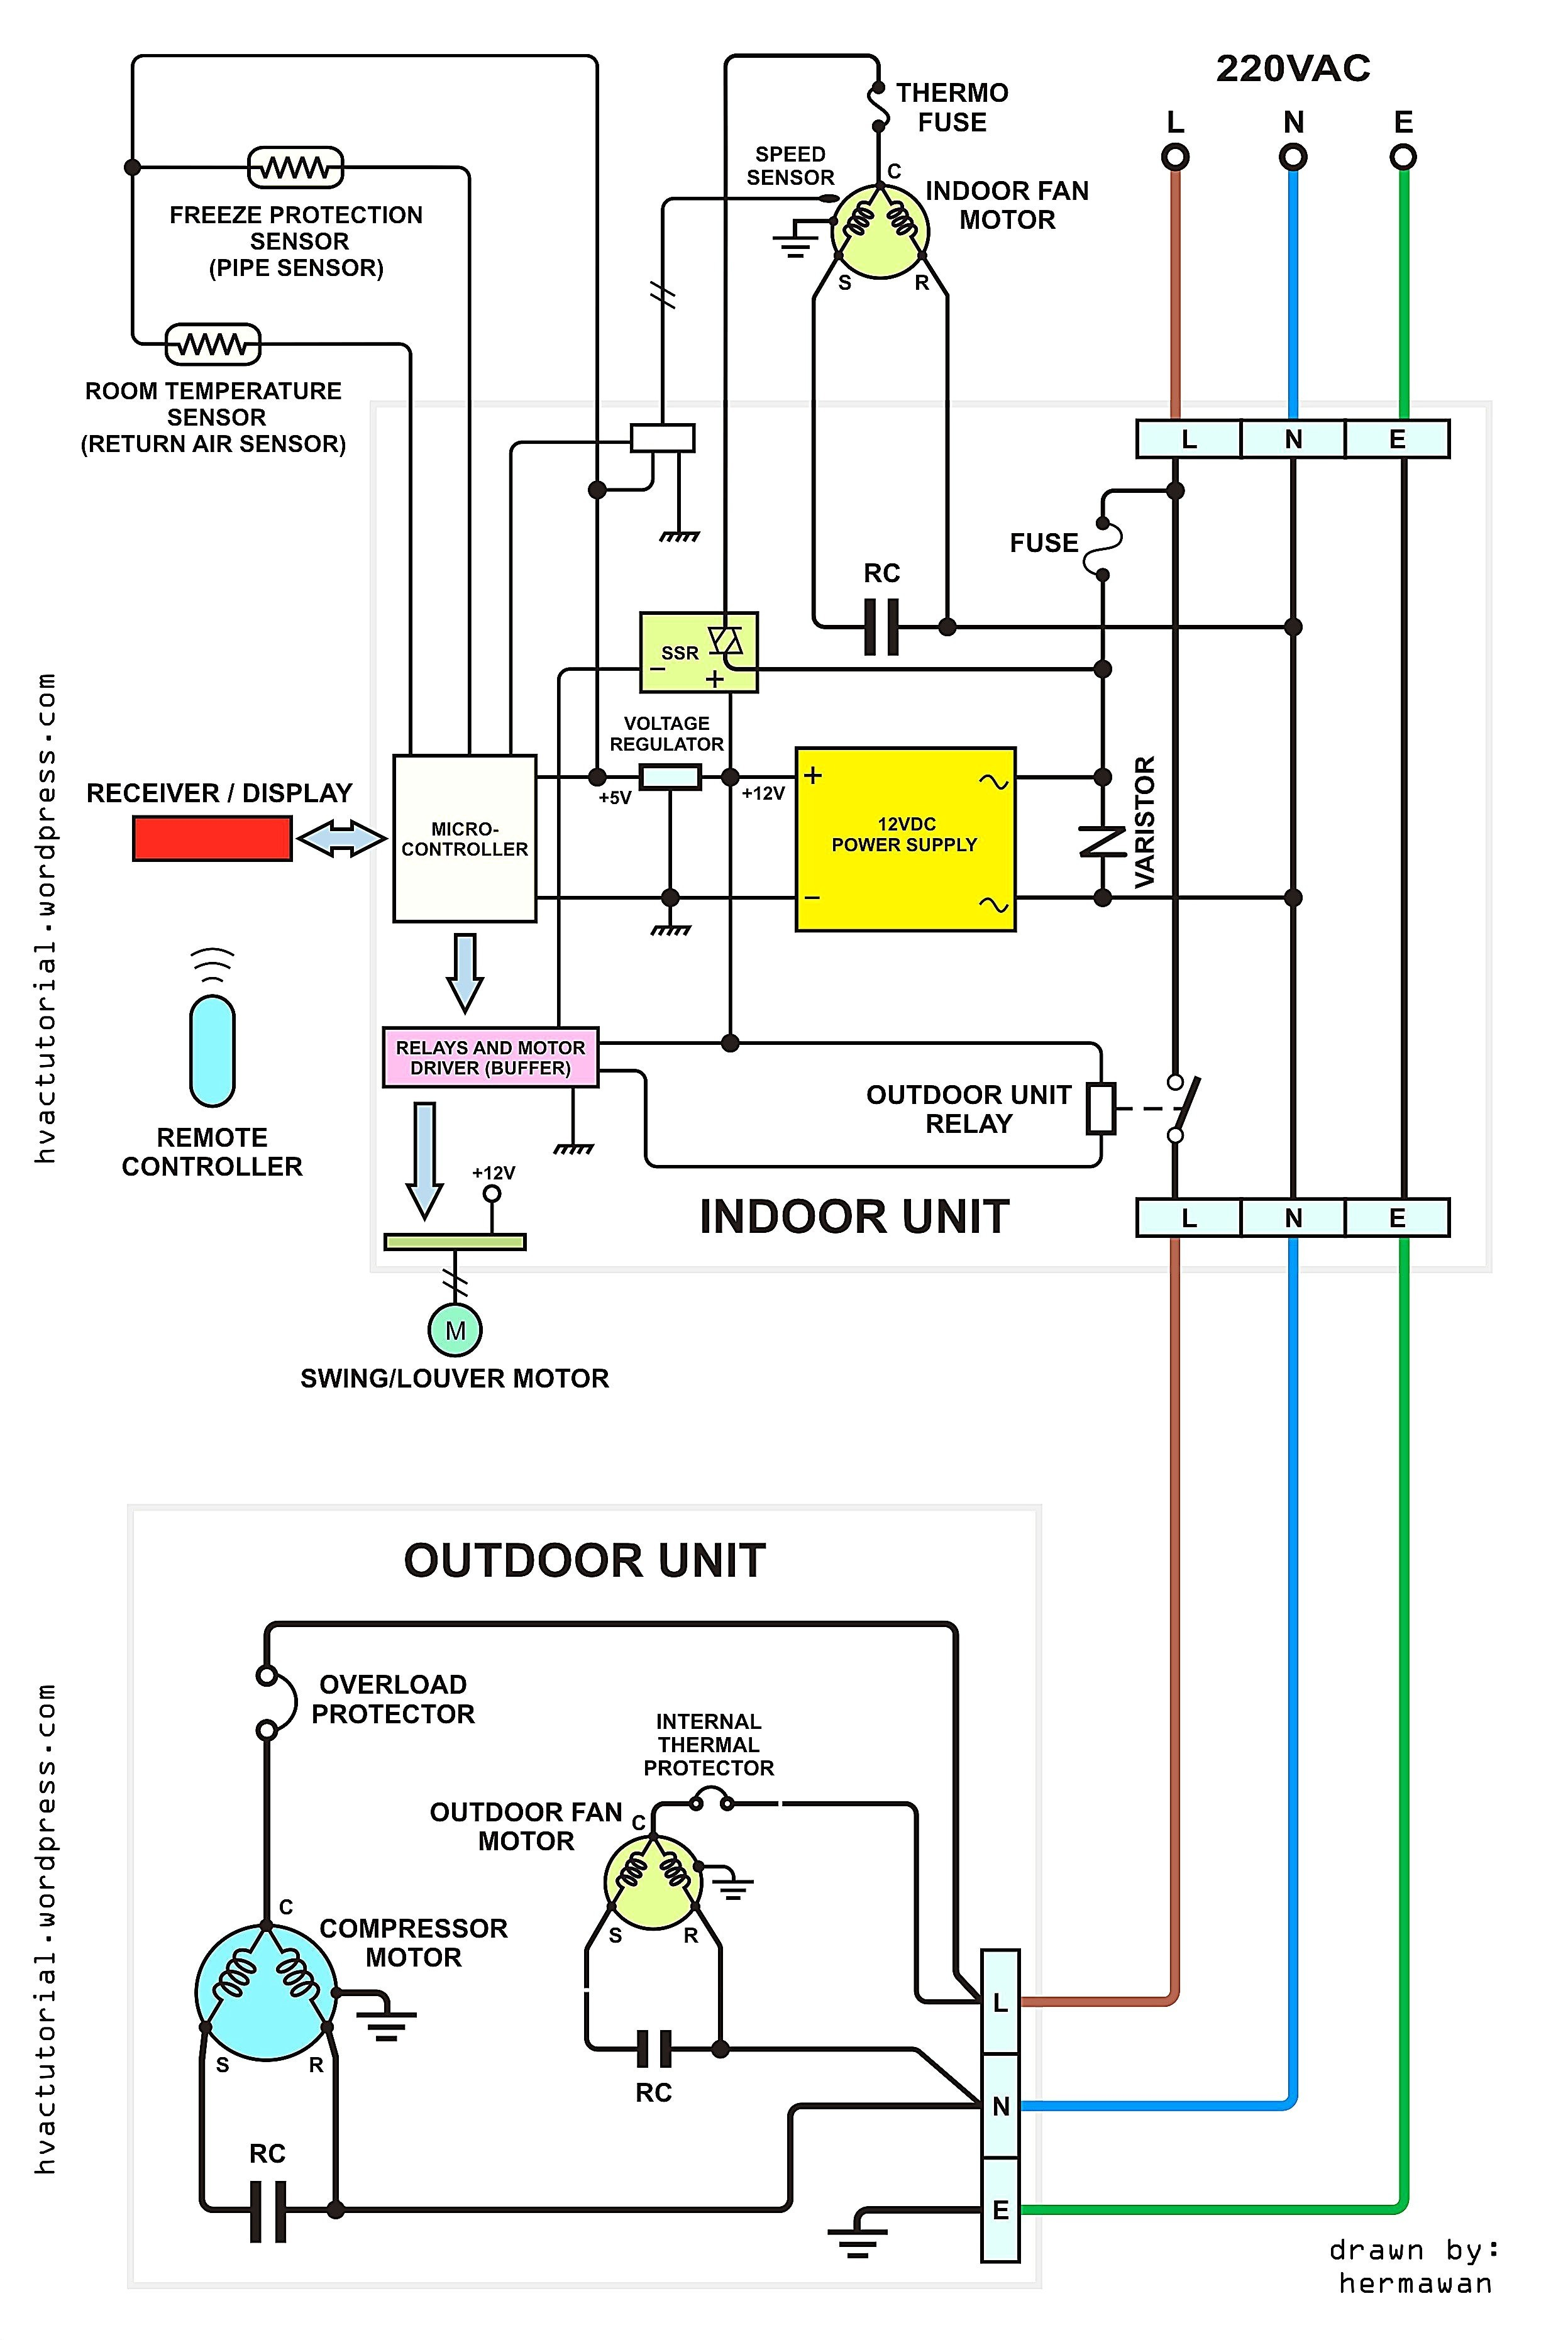 Nest thermostat Wiring Diagram Wiring Diagram Hvac thermostat Best Heat Pump In for Afif Of Nest thermostat Wiring Diagram